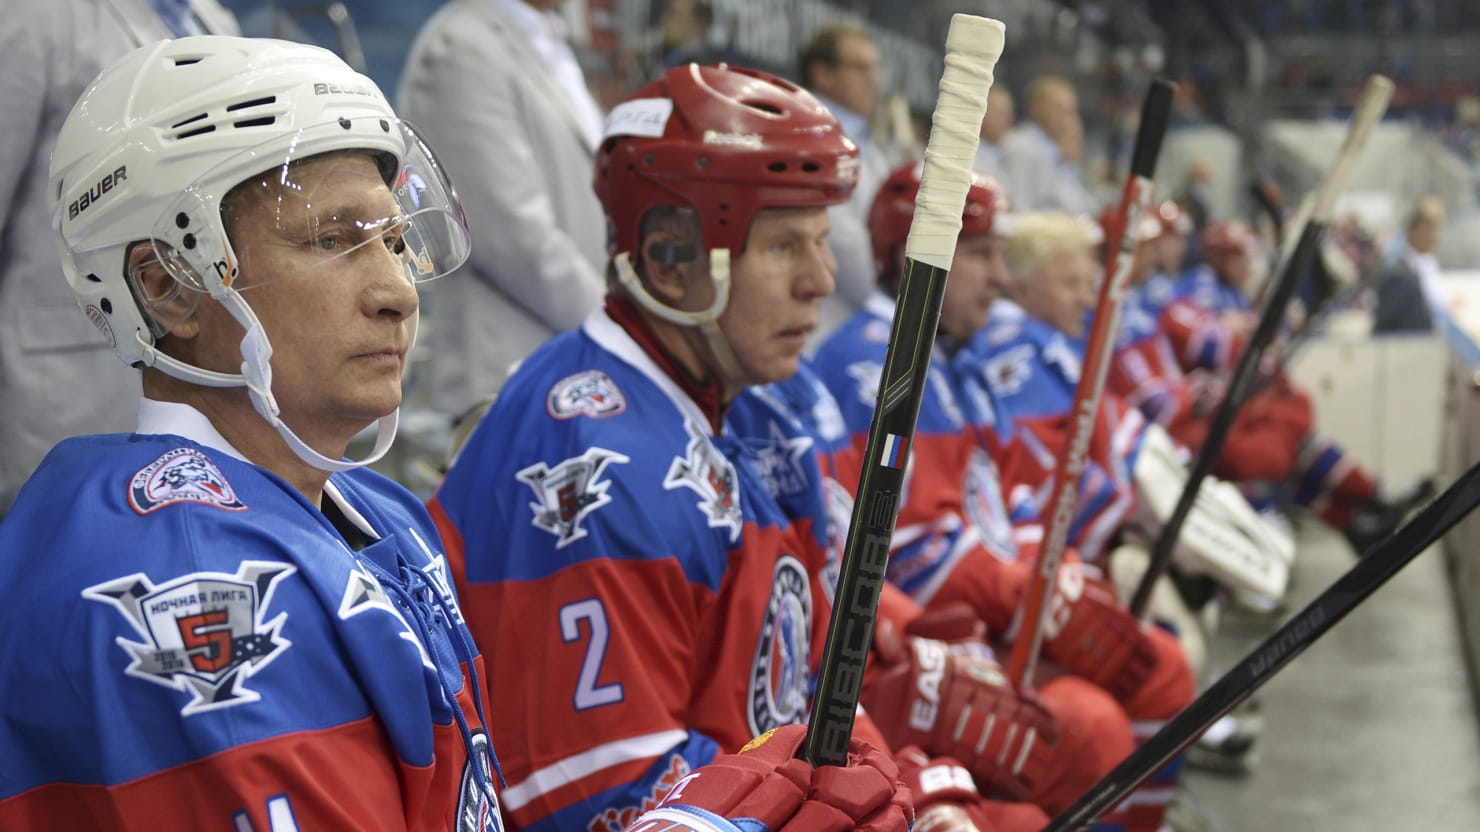 Putin celebrated his birthday, scoring seven goals in a hockey match 10/07/2015 71